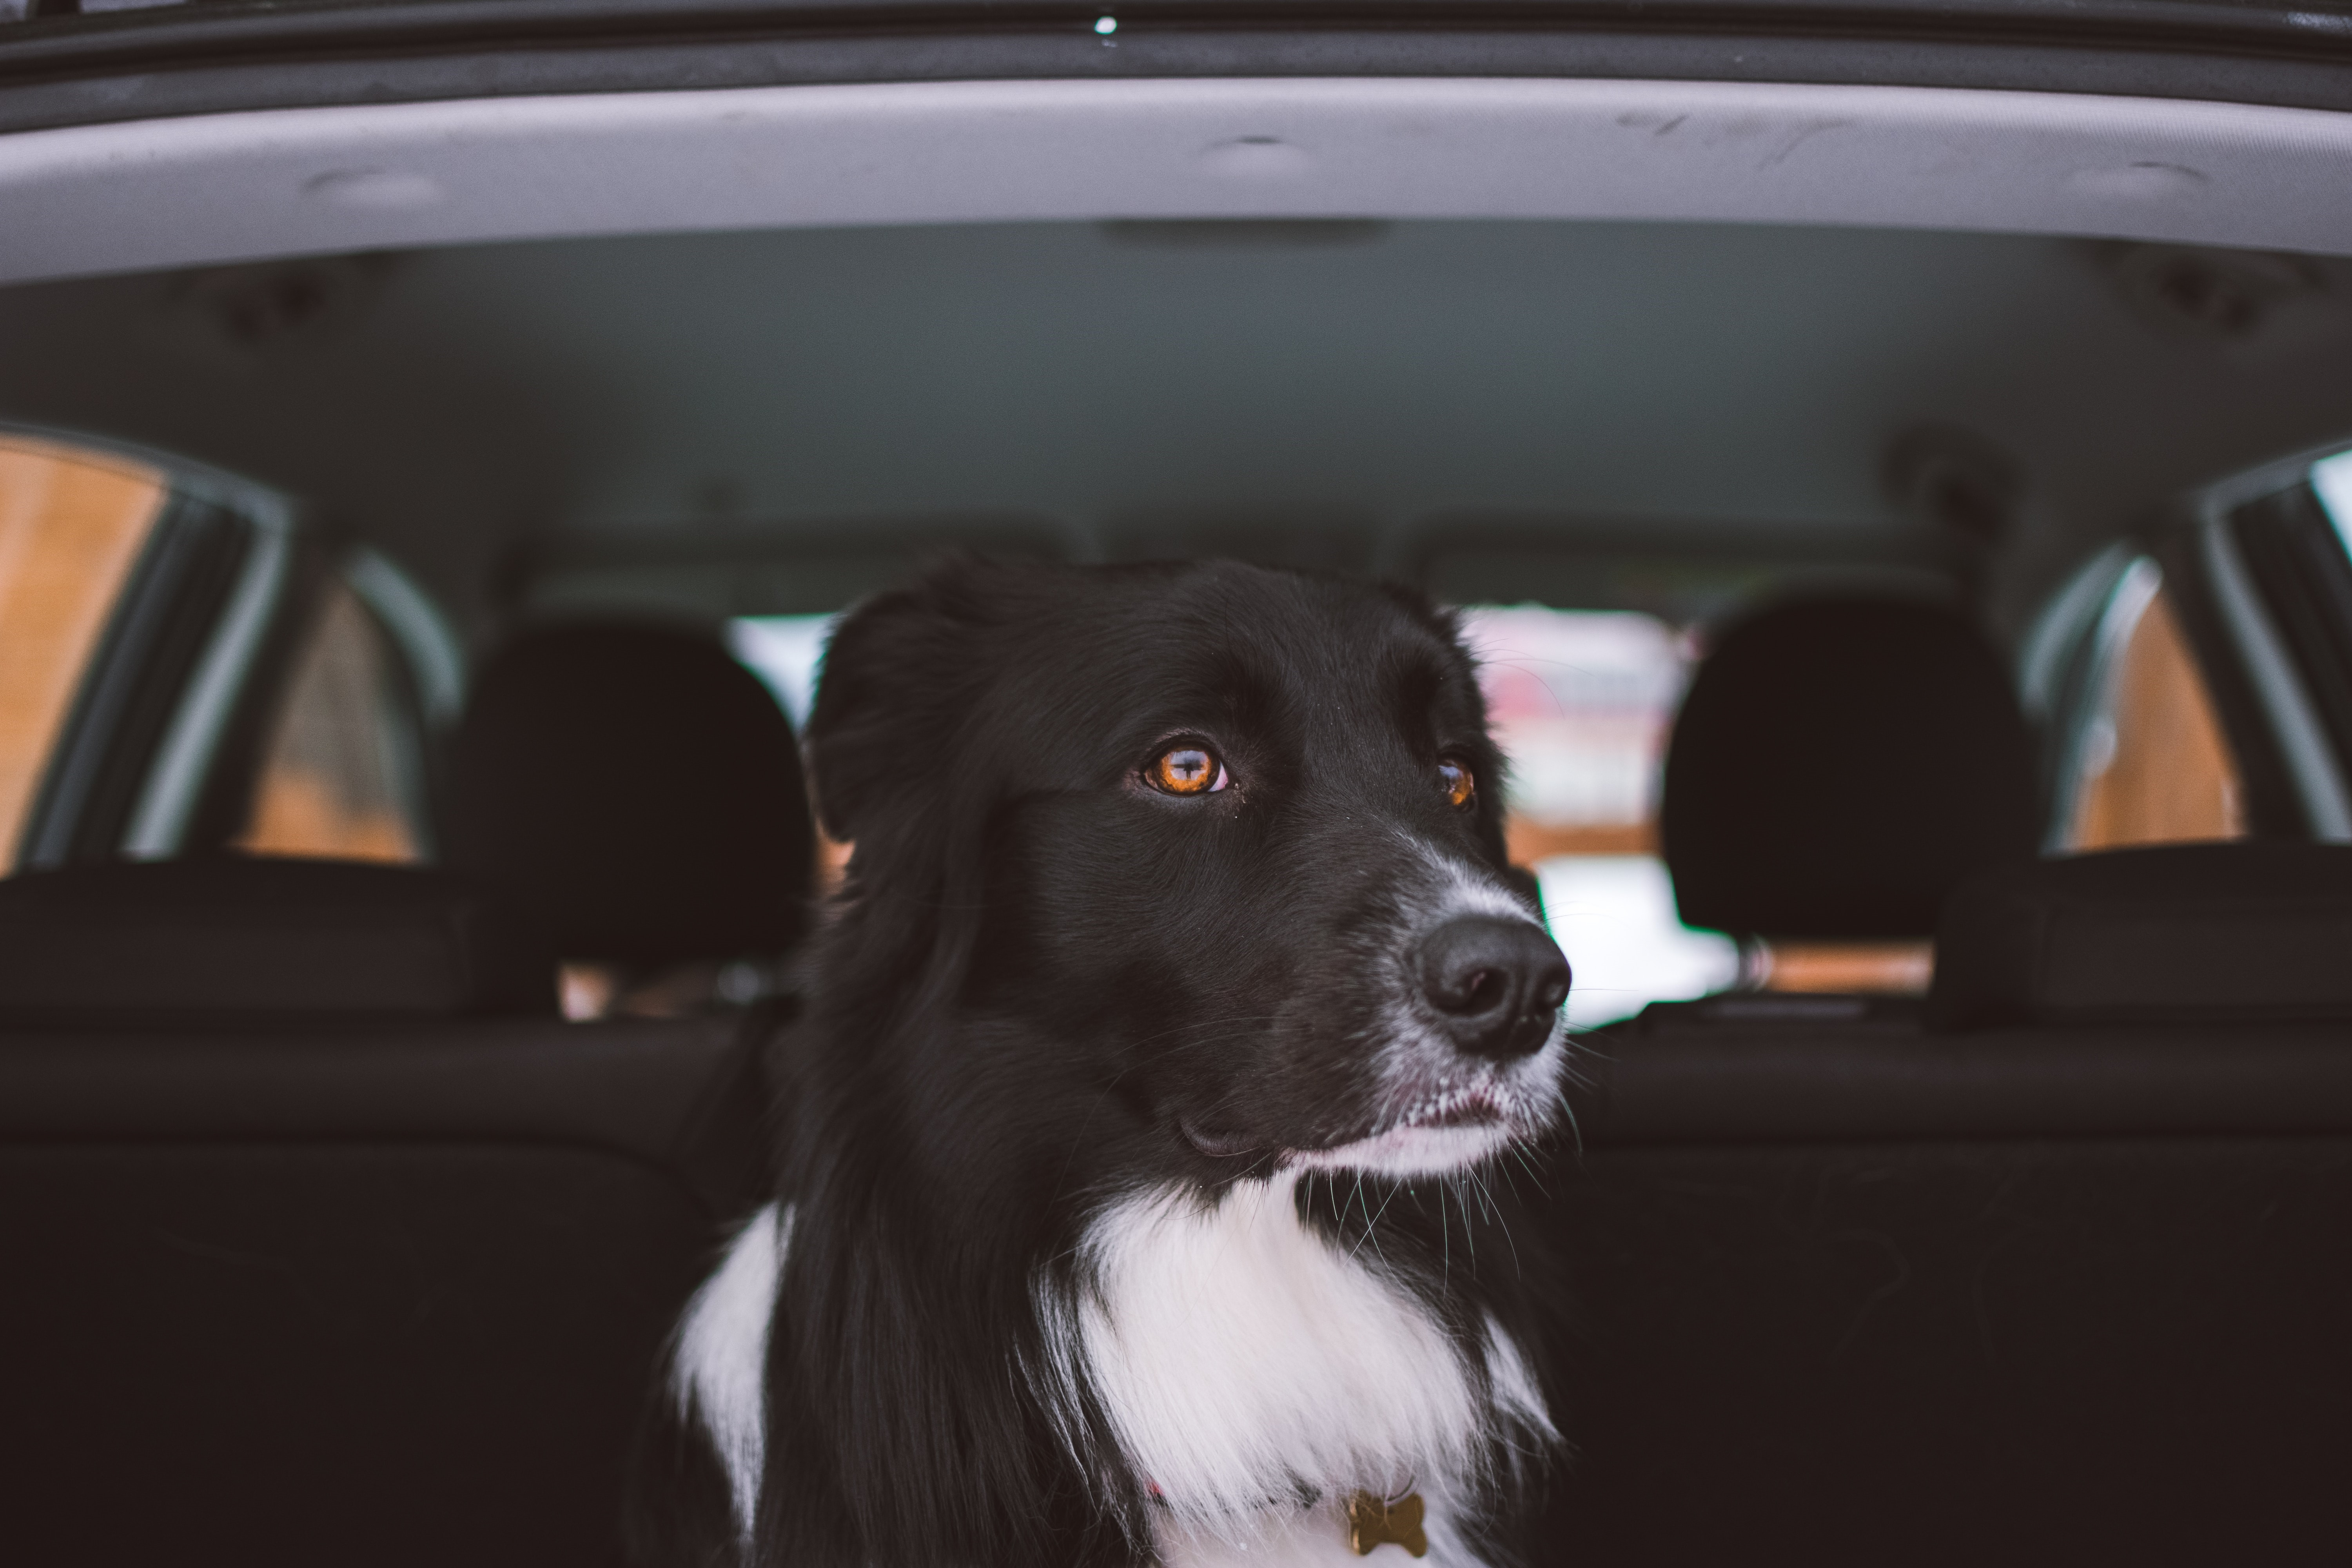 How to Protect Your Car's Interior from Pets